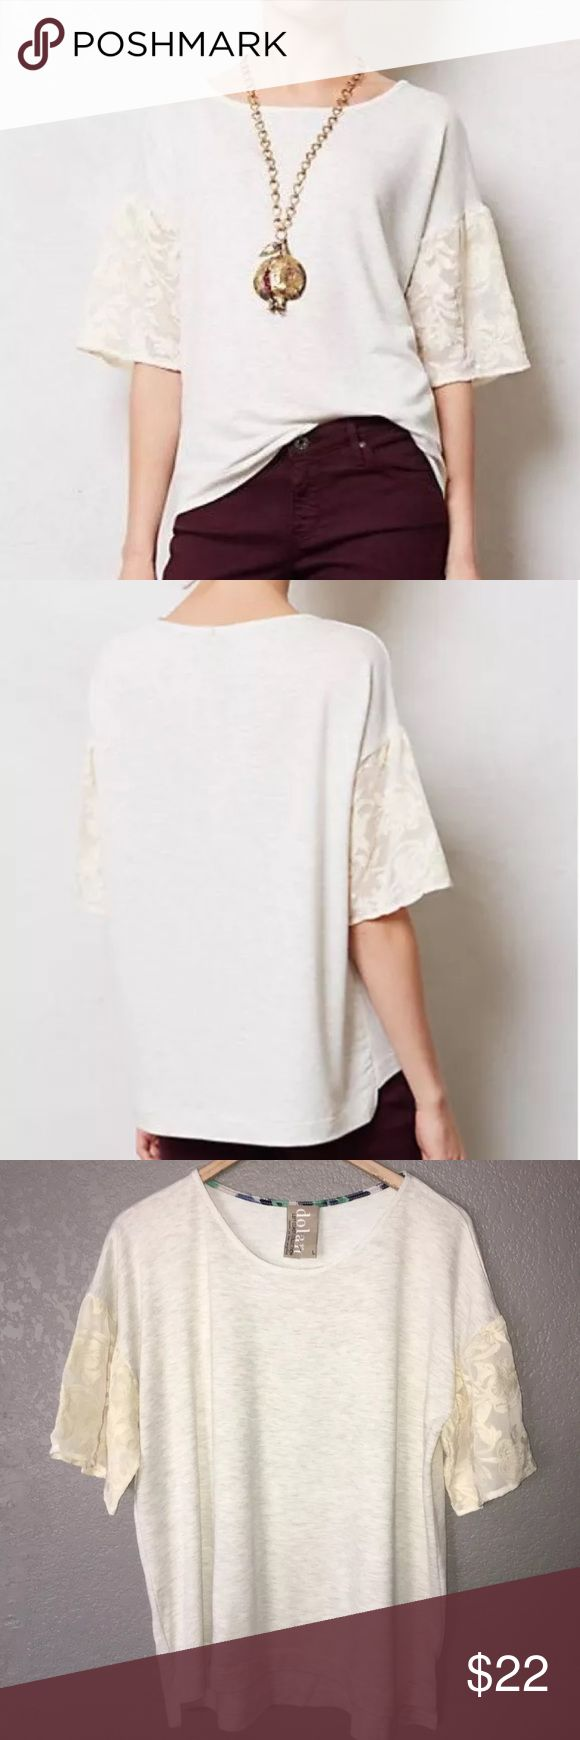 New Anthropologie Dolan Laced Lantern Sleeve Top L Super cute gray & beige heathered knit top with lace lantern sleeves, and a slight hi-low hem. Tag was torn but this item is brand new.  Bust measures 48 inches and the length from shoulder to hem is 25-27.5 inches. Dolan Tops Blouses